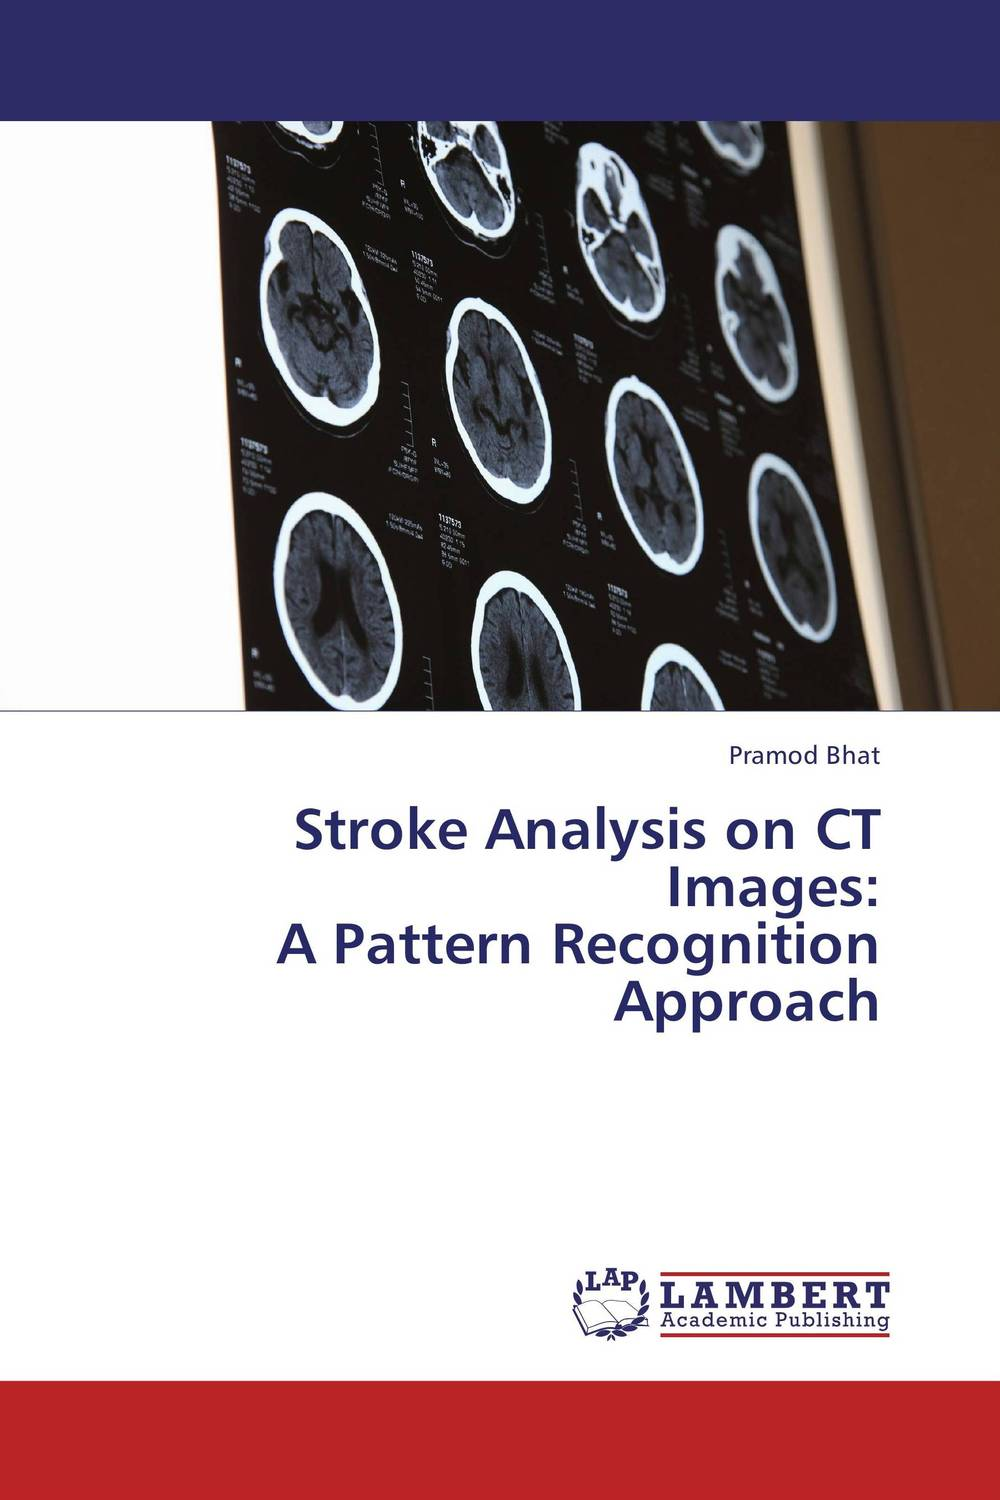 Stroke Analysis on CT Images: A Pattern Recognition Approach bijoy kumar nanda and ashirbad swain analysis of machine tool structure using rsm approach